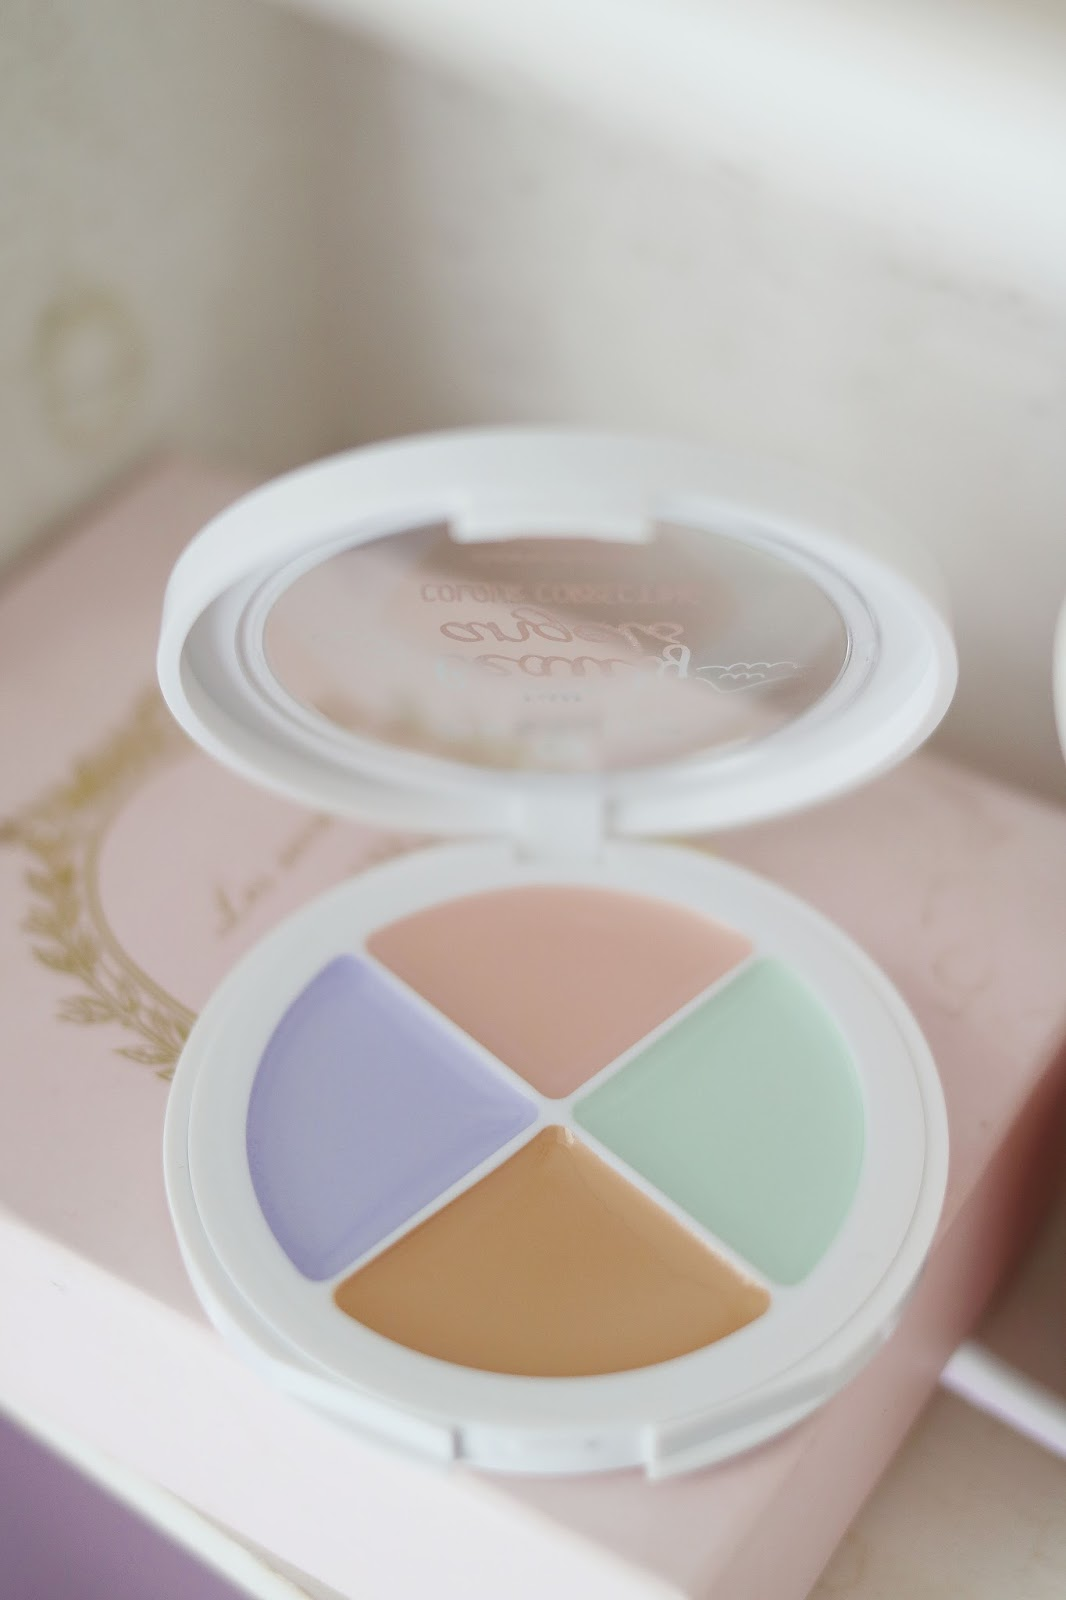 My Little Beauty Angels , Colours Correcting , Essence Cosmétiques ,  Essence , Blog beauté , Paris , Rose Mademoiselle , Rosemademoiselle , revue , swatch , avis , multicolour matt pearls , concealer palette , couleurs correctrices , teint parfait ,